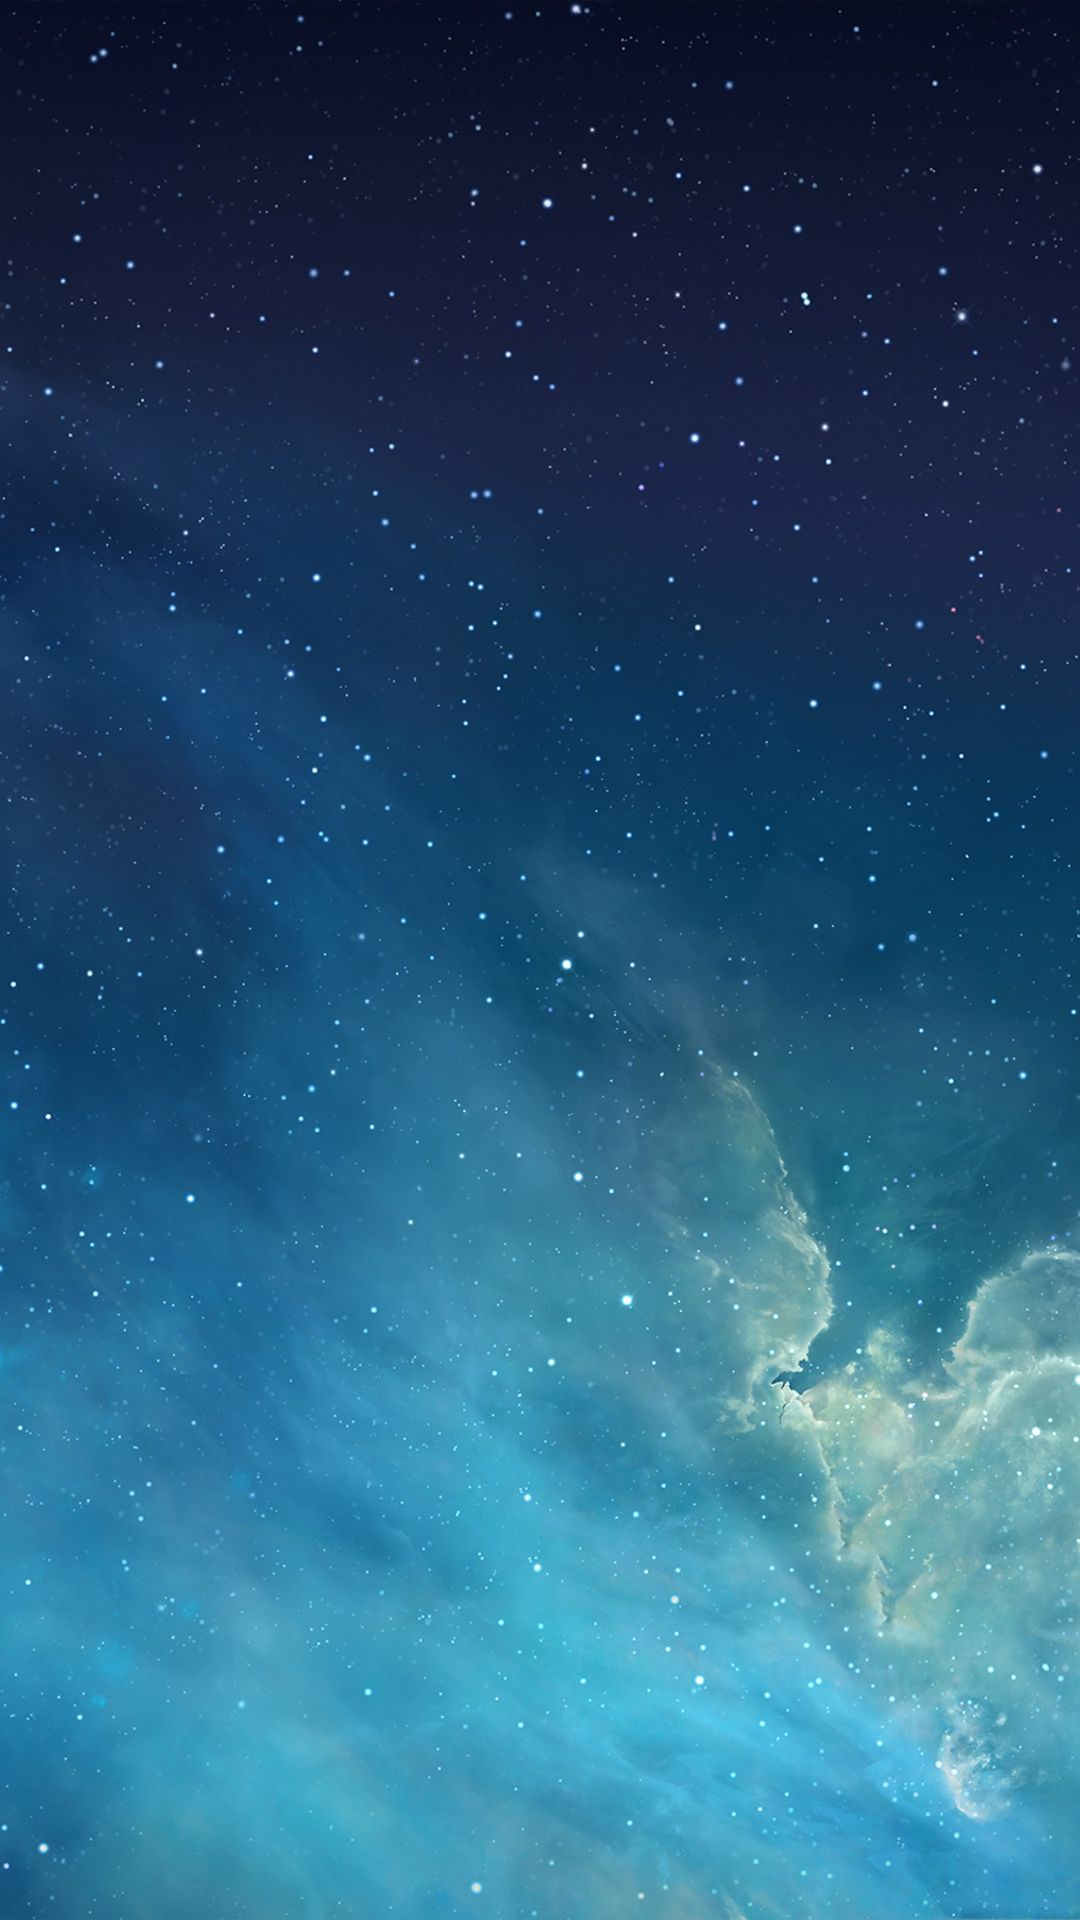 blue sky stars default lockscreen android wallpaper | wall : paper